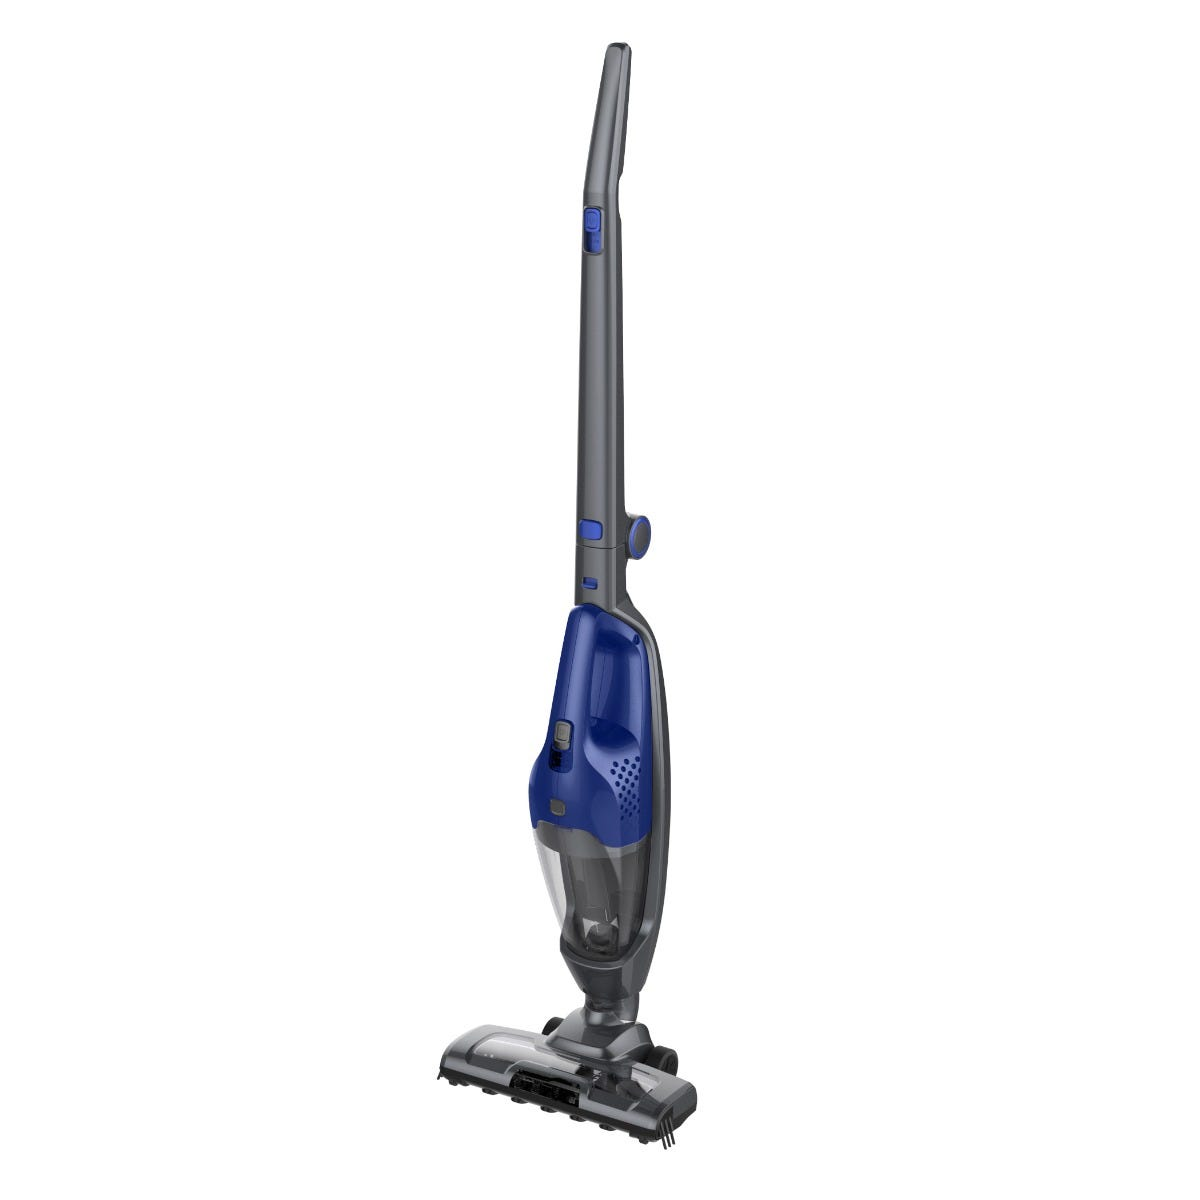 Tower CS60 22.2V 400ml Cordless 2-in-1 Stick Vacuum Cleaner - Blue and Grey